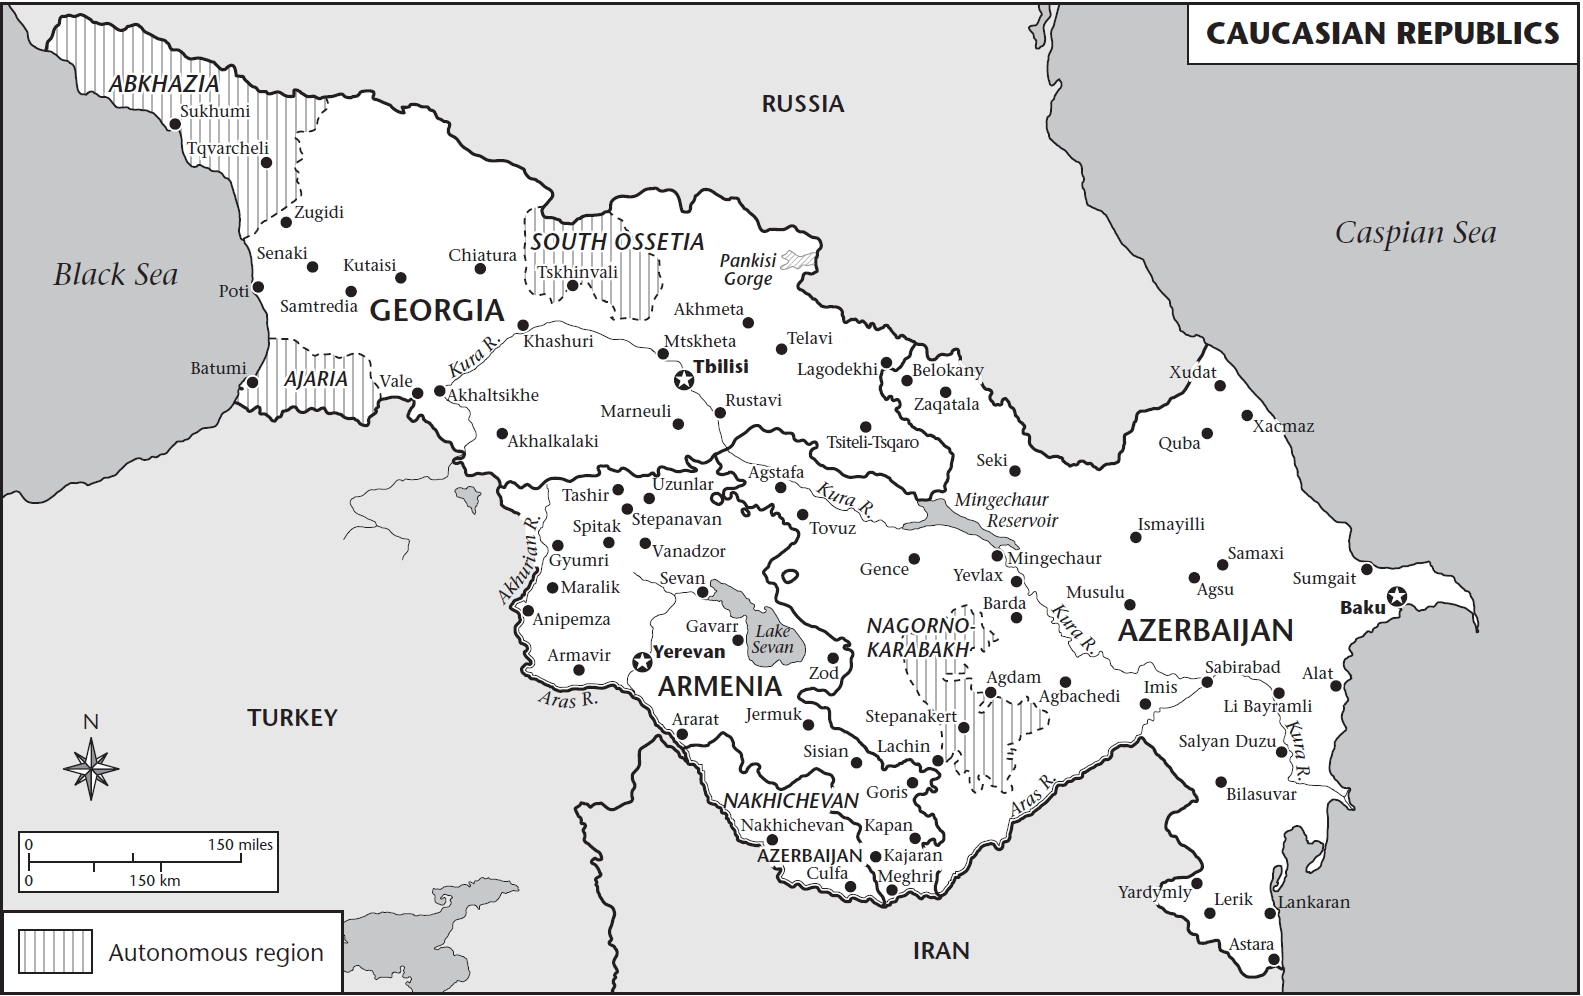 Map of Caucasus Republics